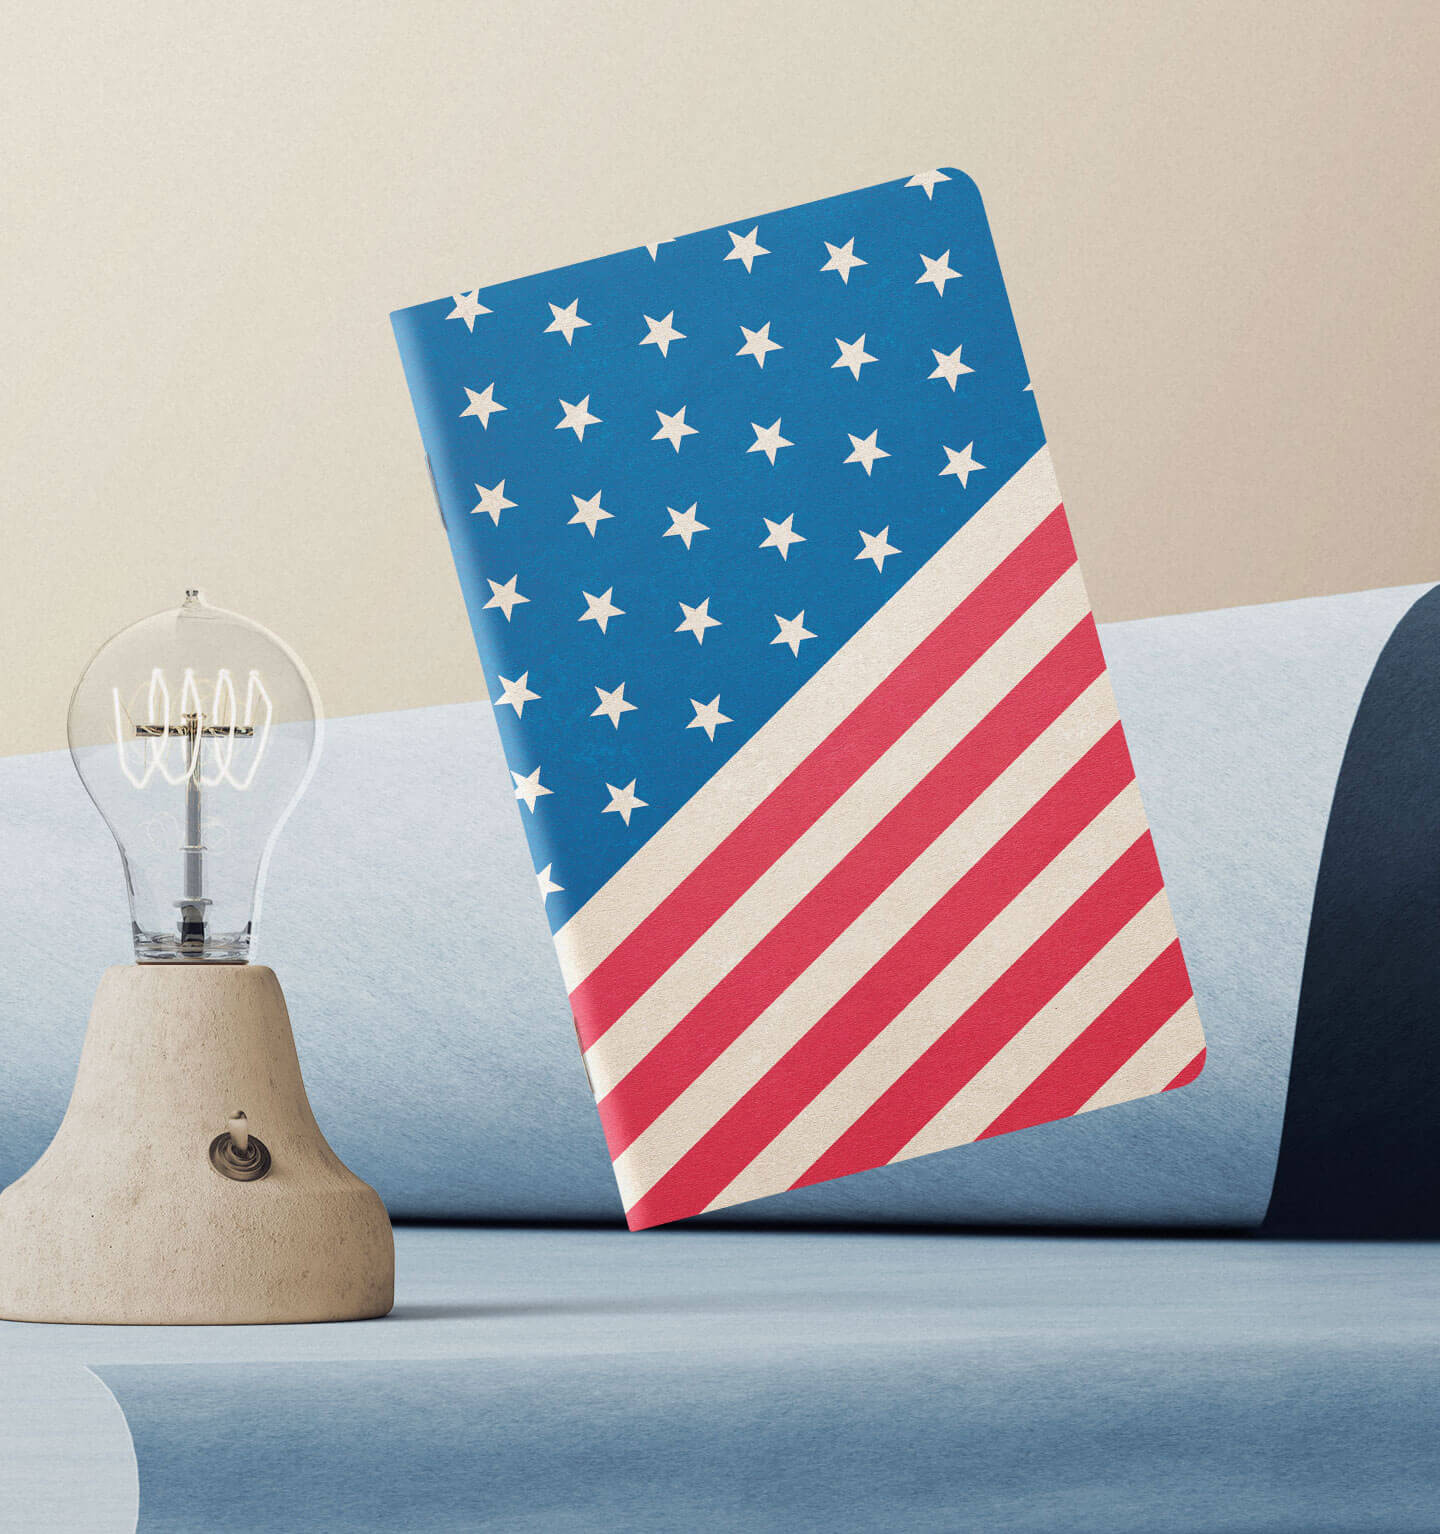 An American Flag notebook, next to a minialistic stone lamp.